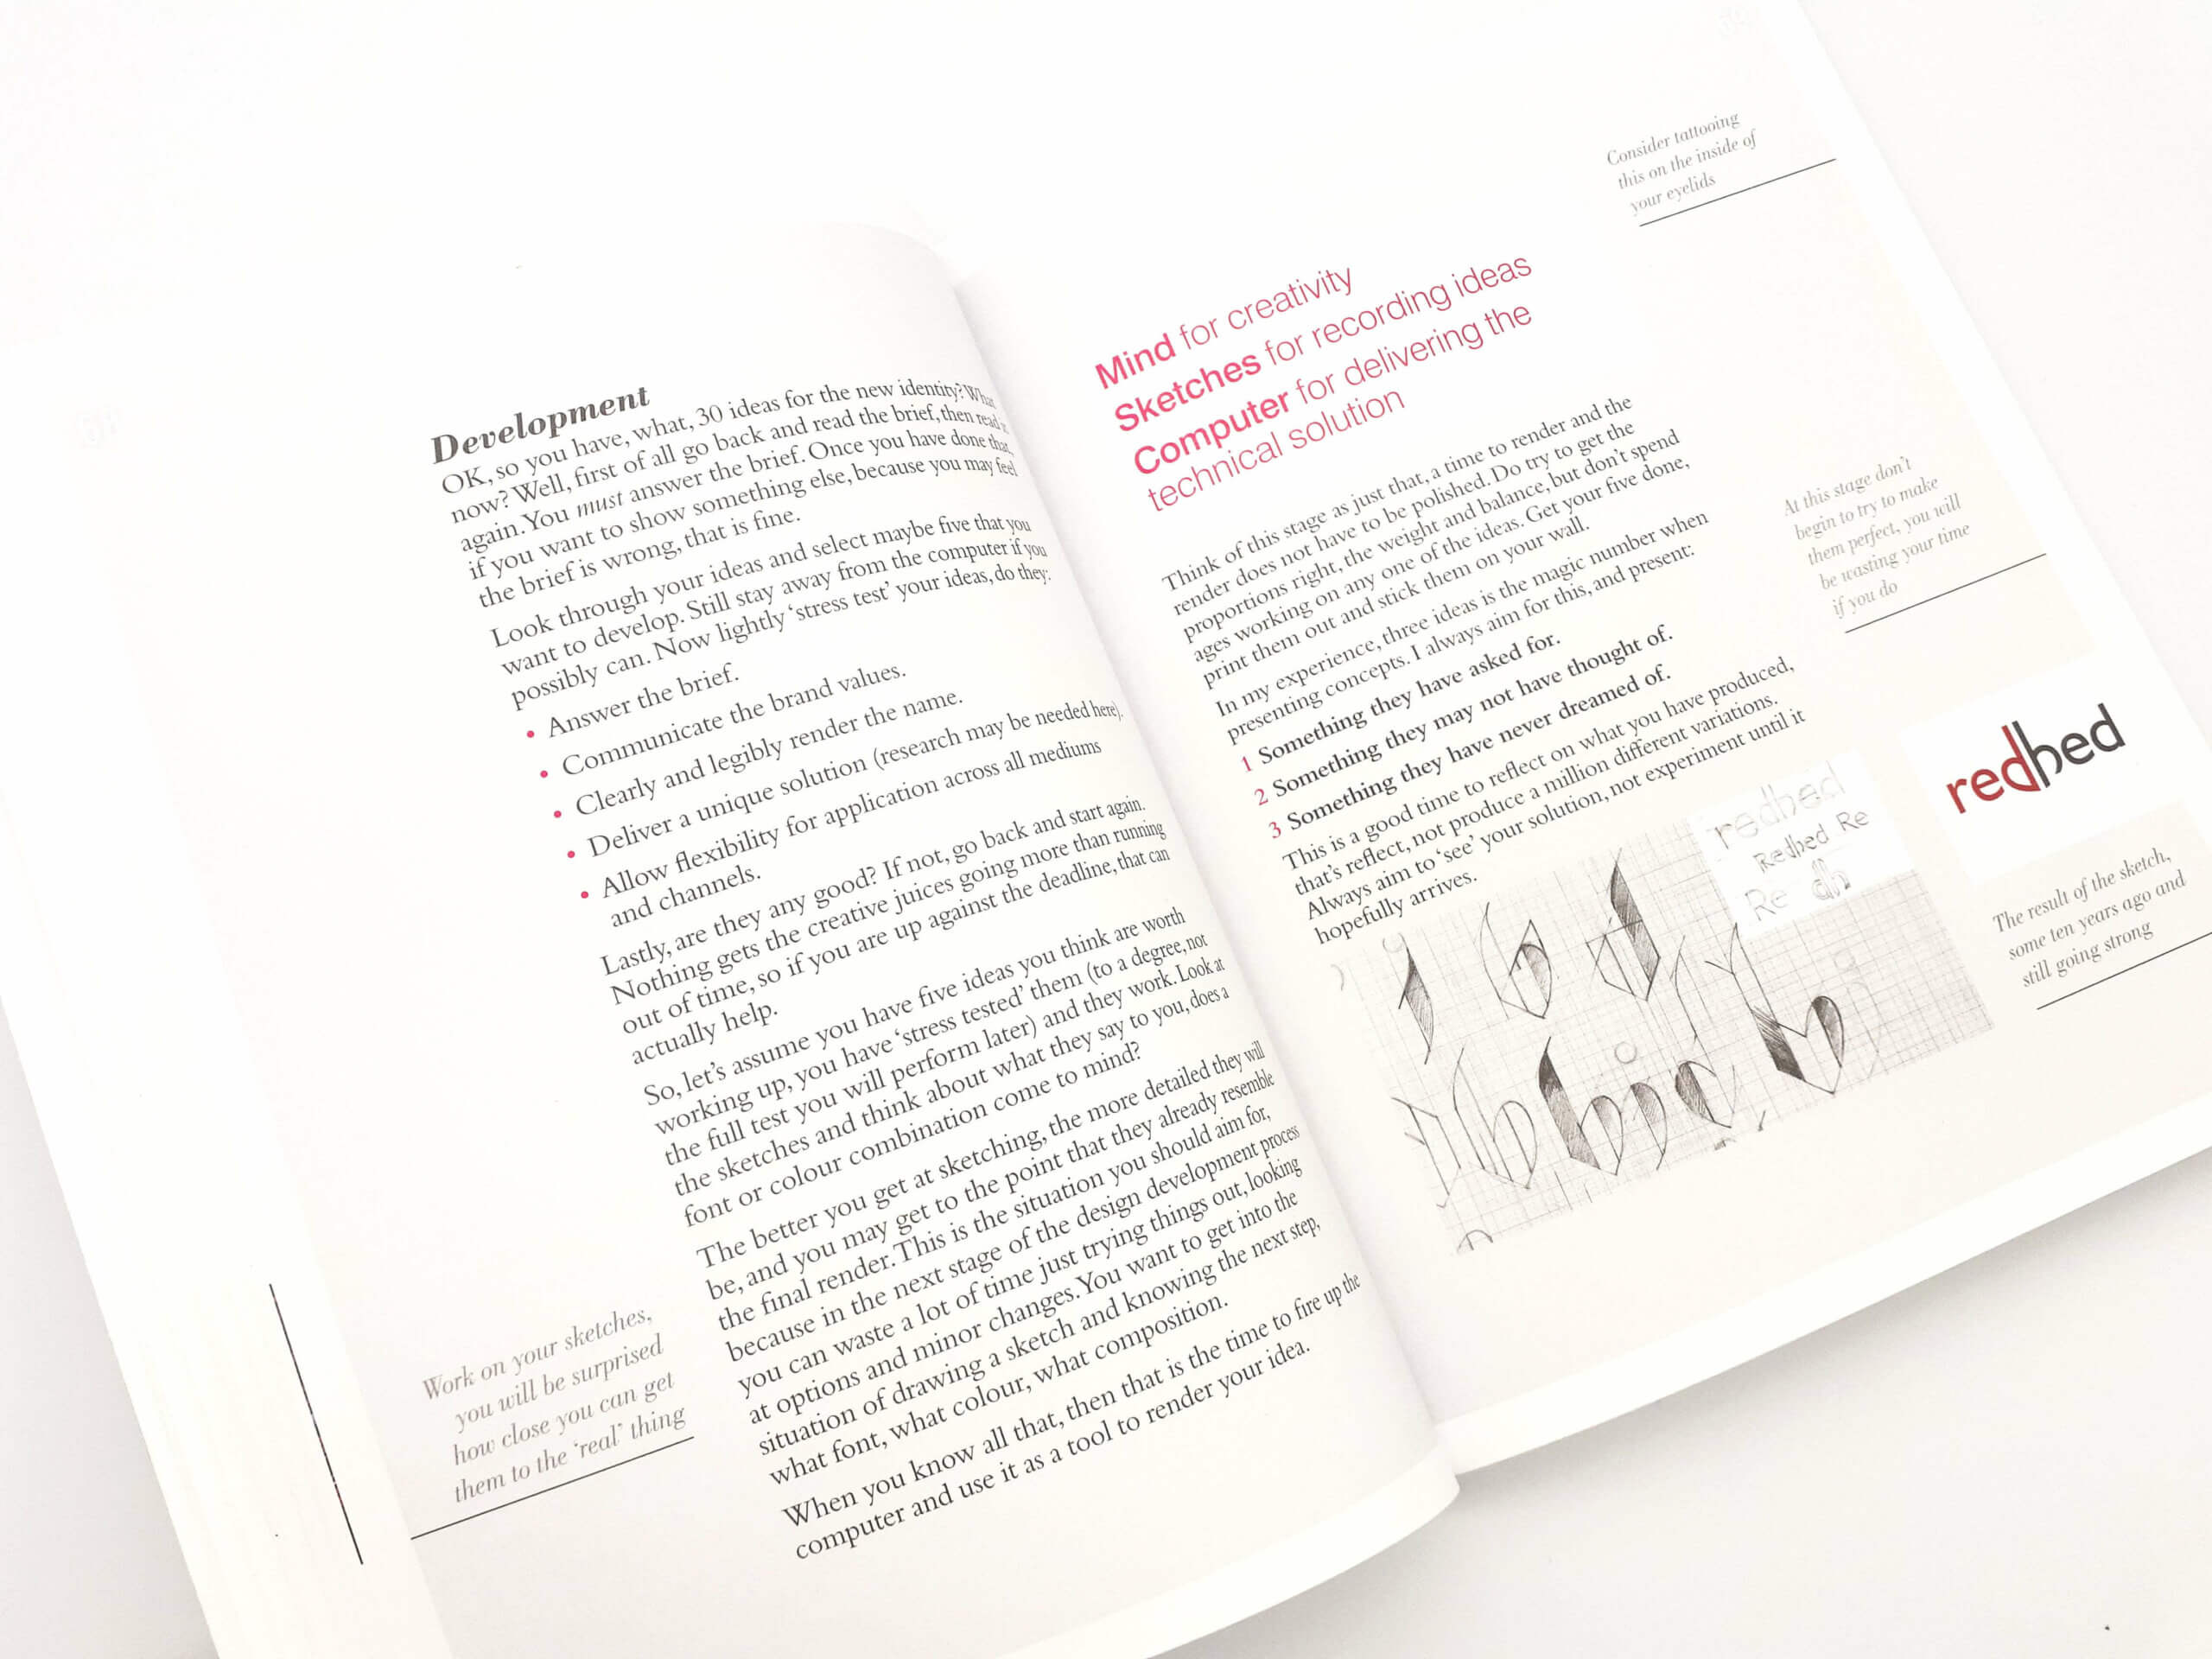 Know Your Onions - Corporate Identity By Drew de Soto - Book Review_6